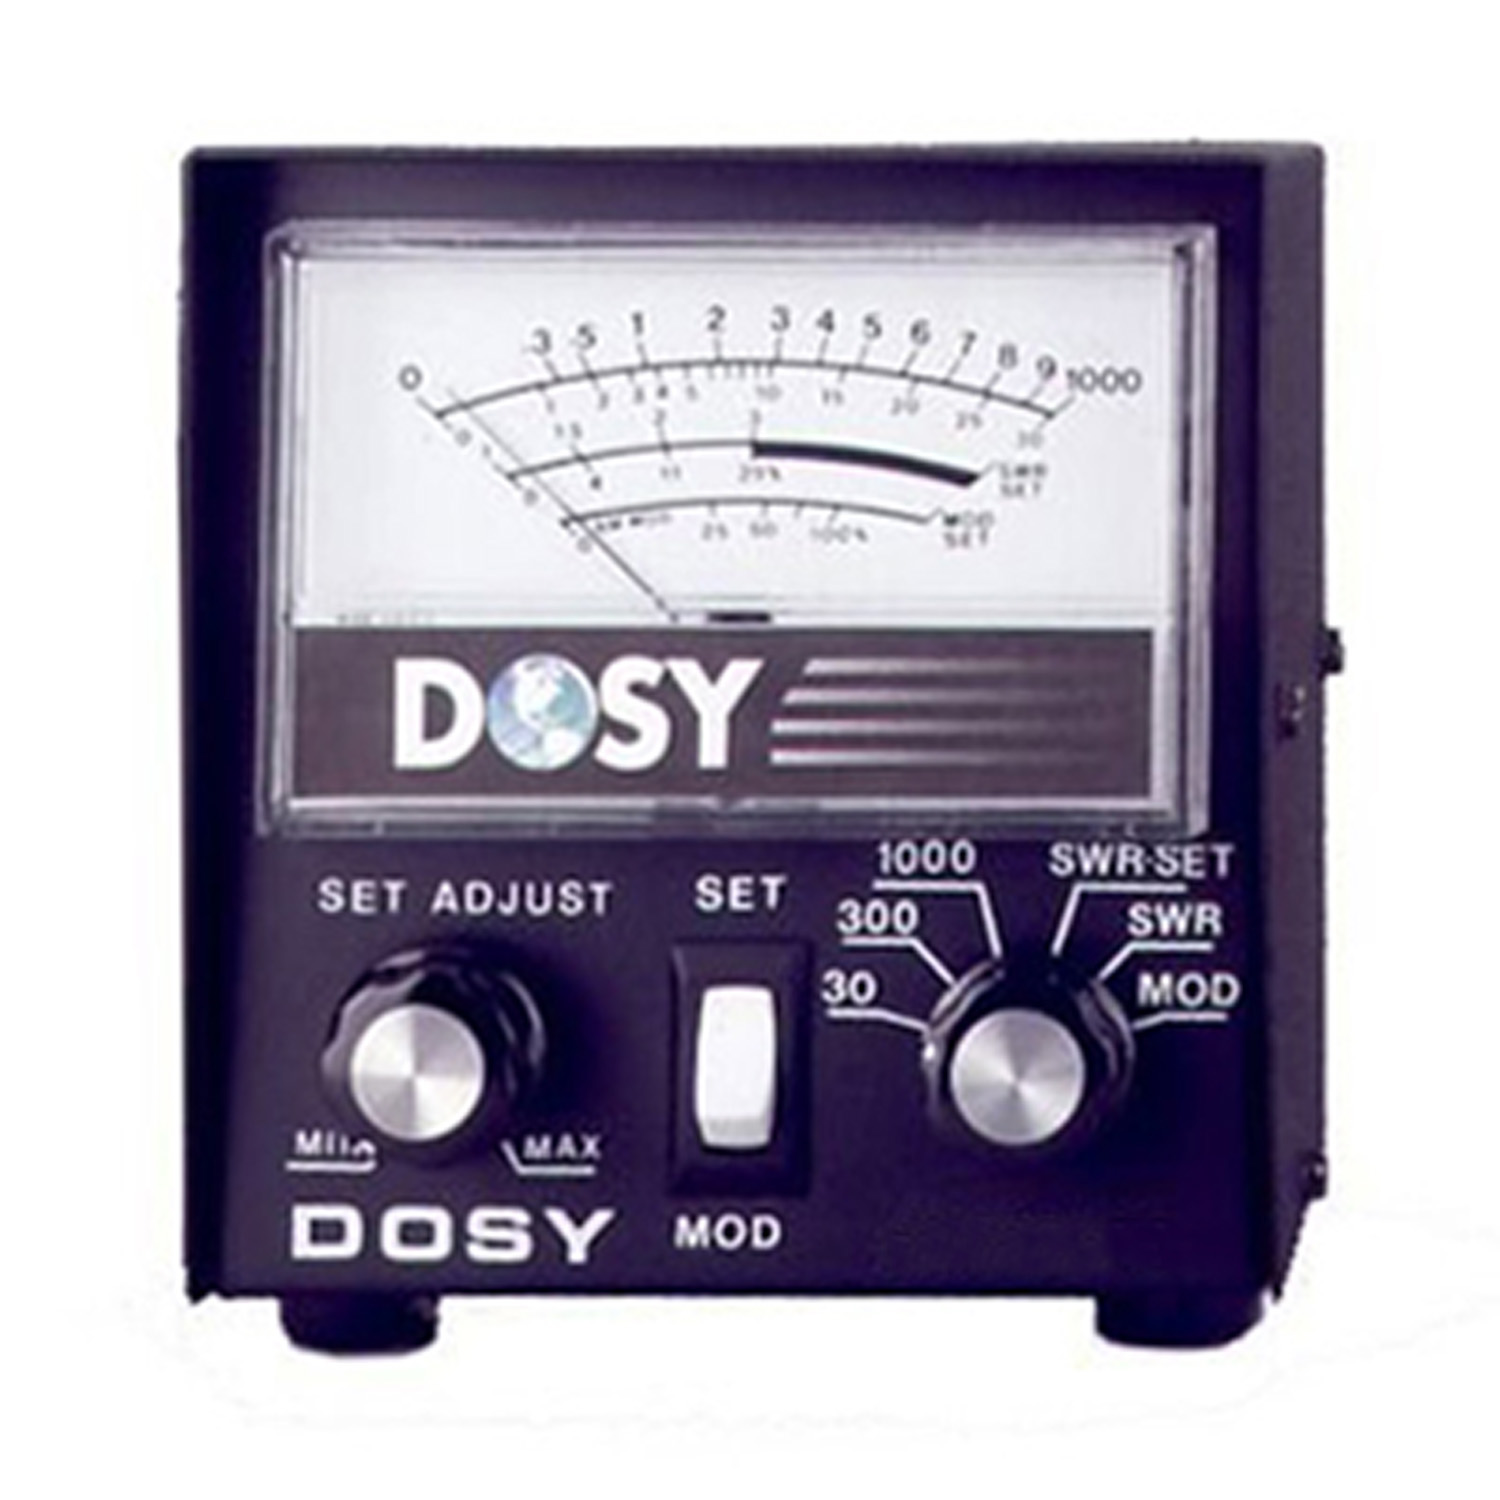 PM1000 - Dosy SWR and Modulation Meter Test Set For 30/300/1000 Watts